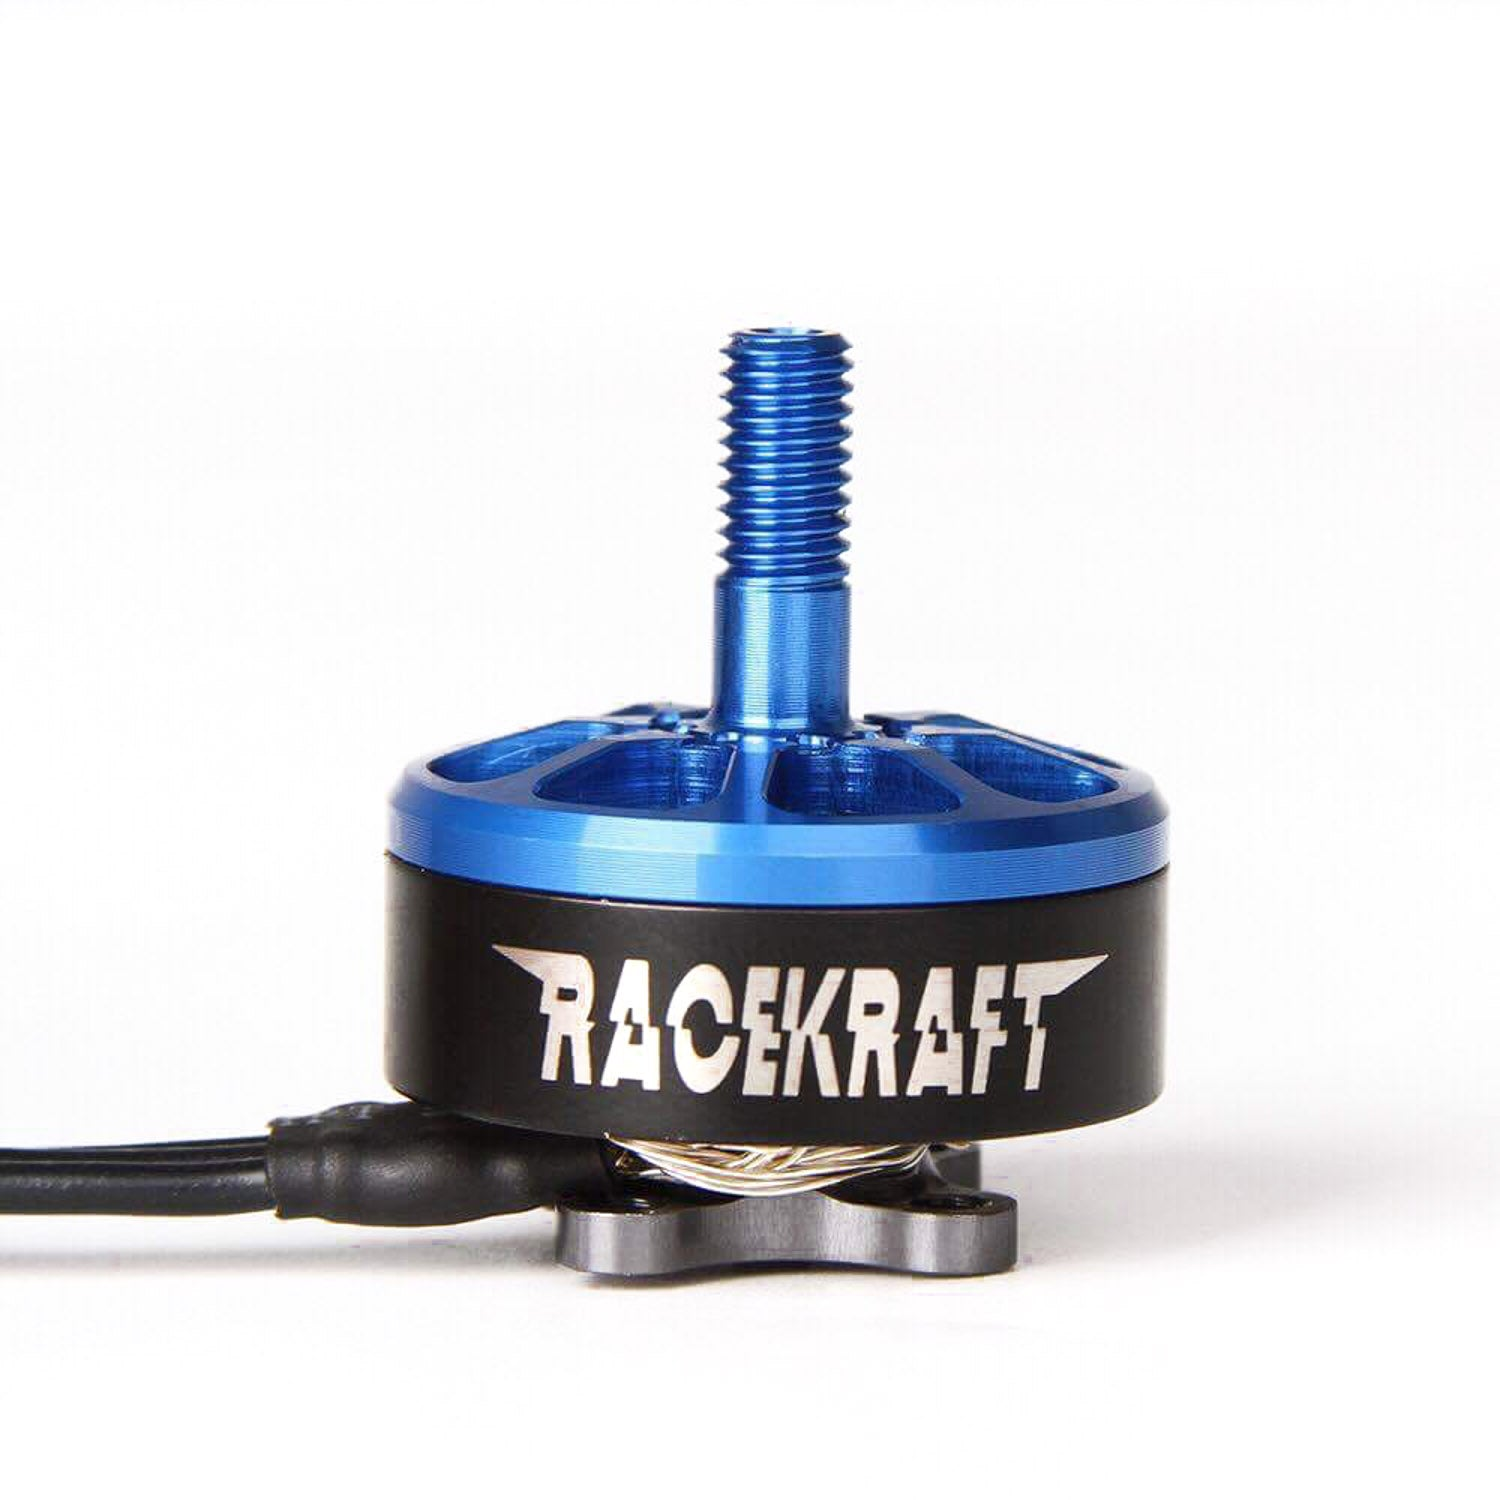 RaceKraft 2307/2542.0KV Premium Brushless Motor